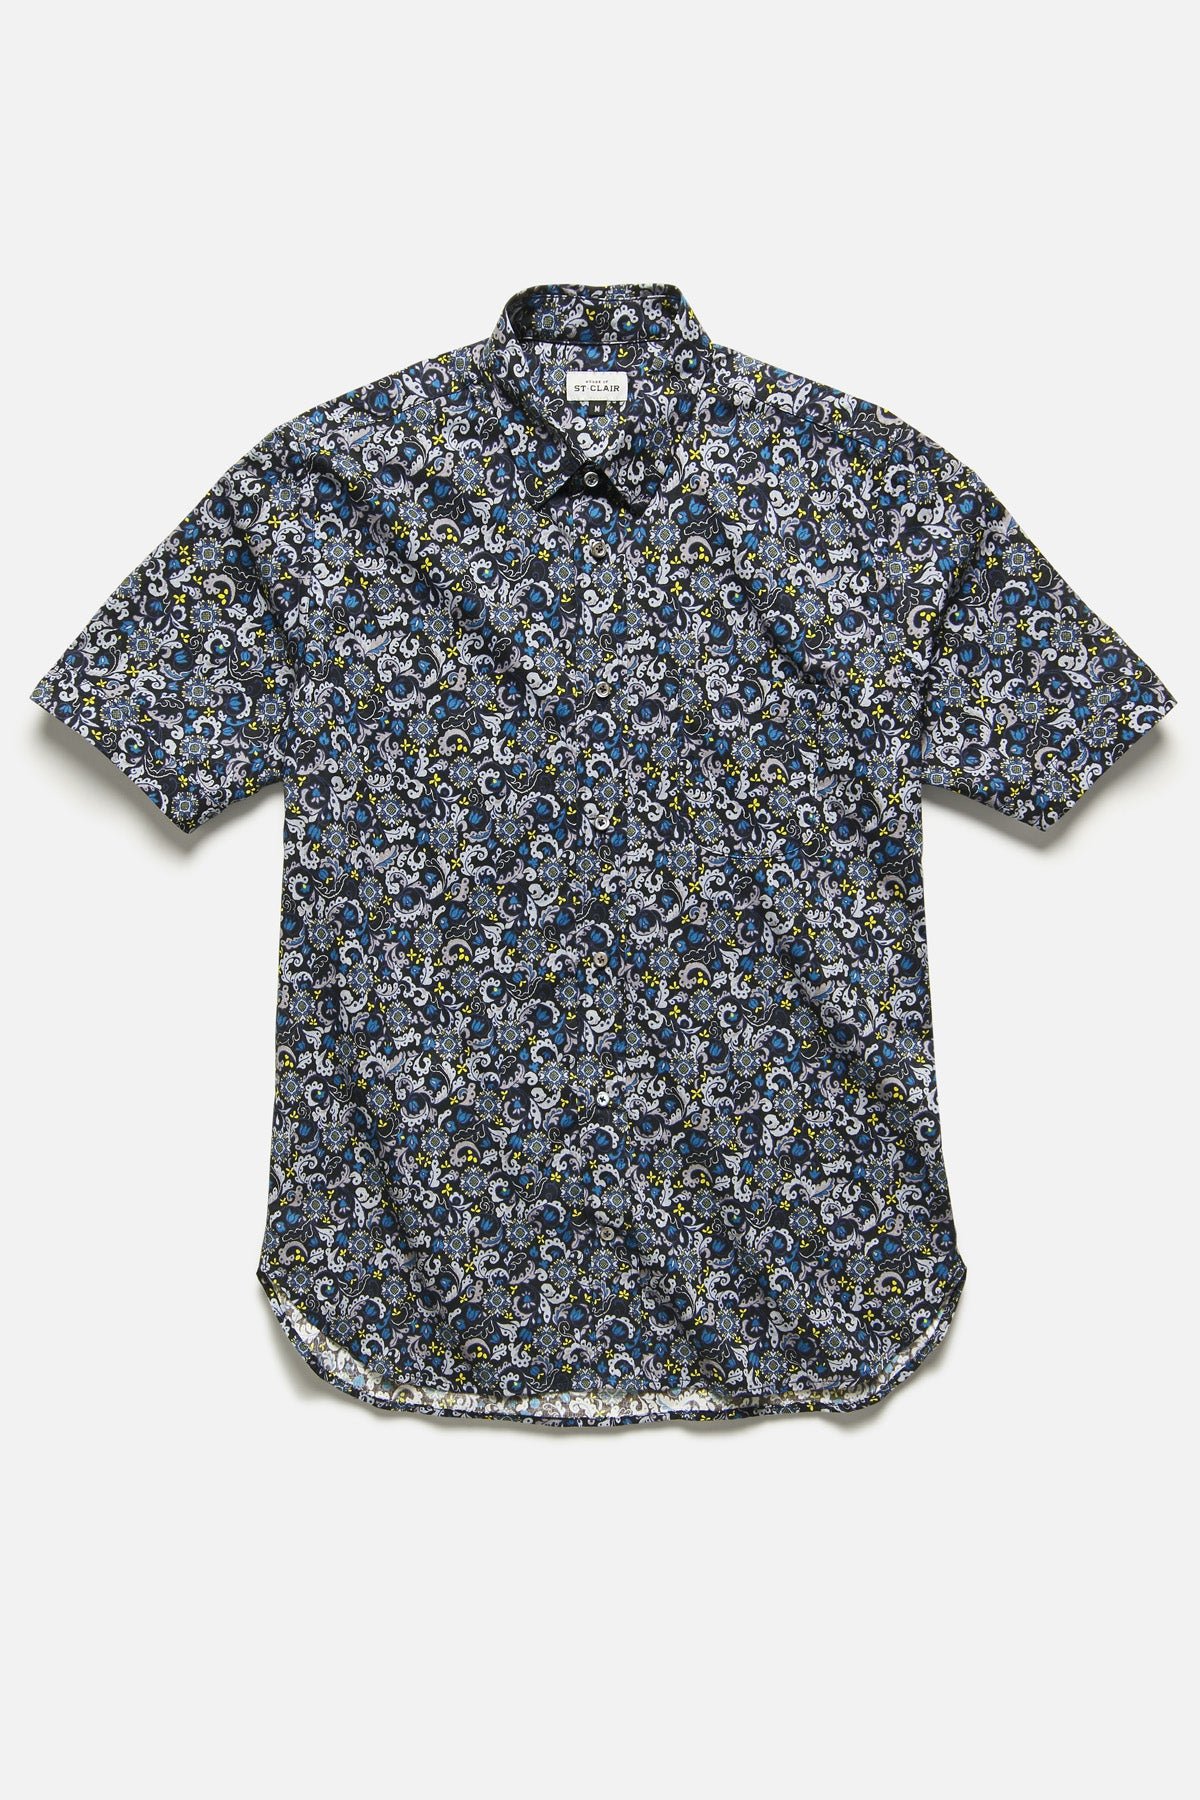 CHICON SHIRT IN BLUE/BLACK FLORAL - Fortune Goods